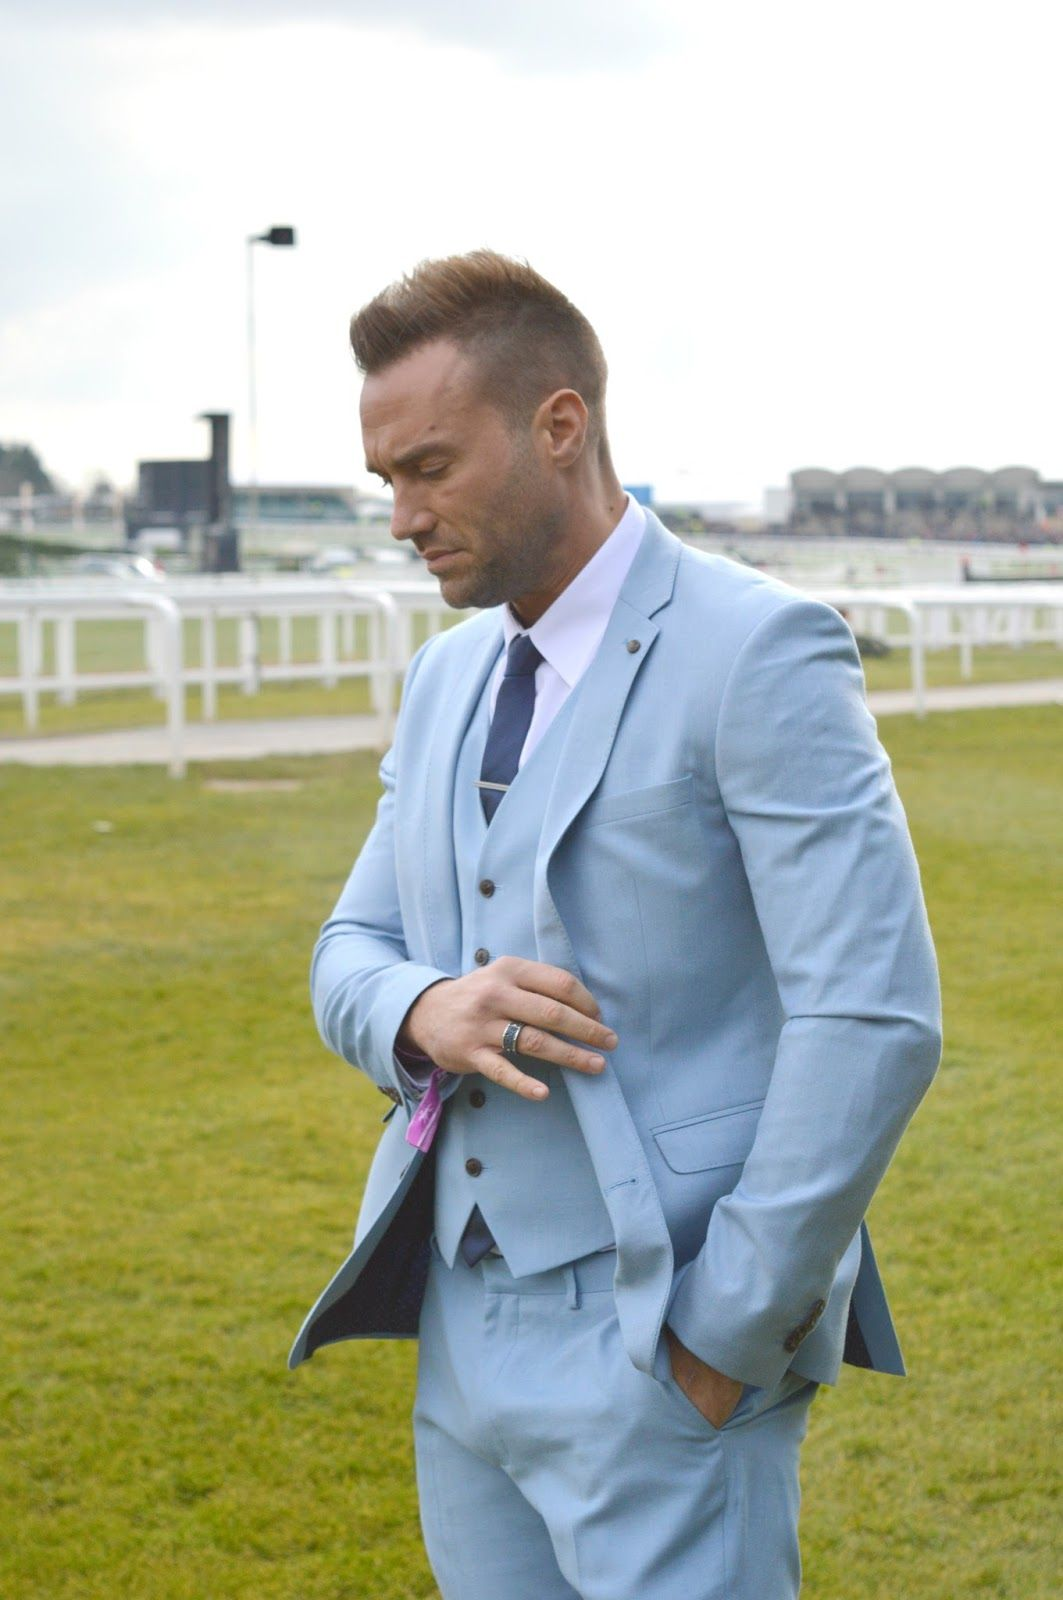 A very #SmartOccasion with Burton Menswear | Light blue suit, Dapper ...